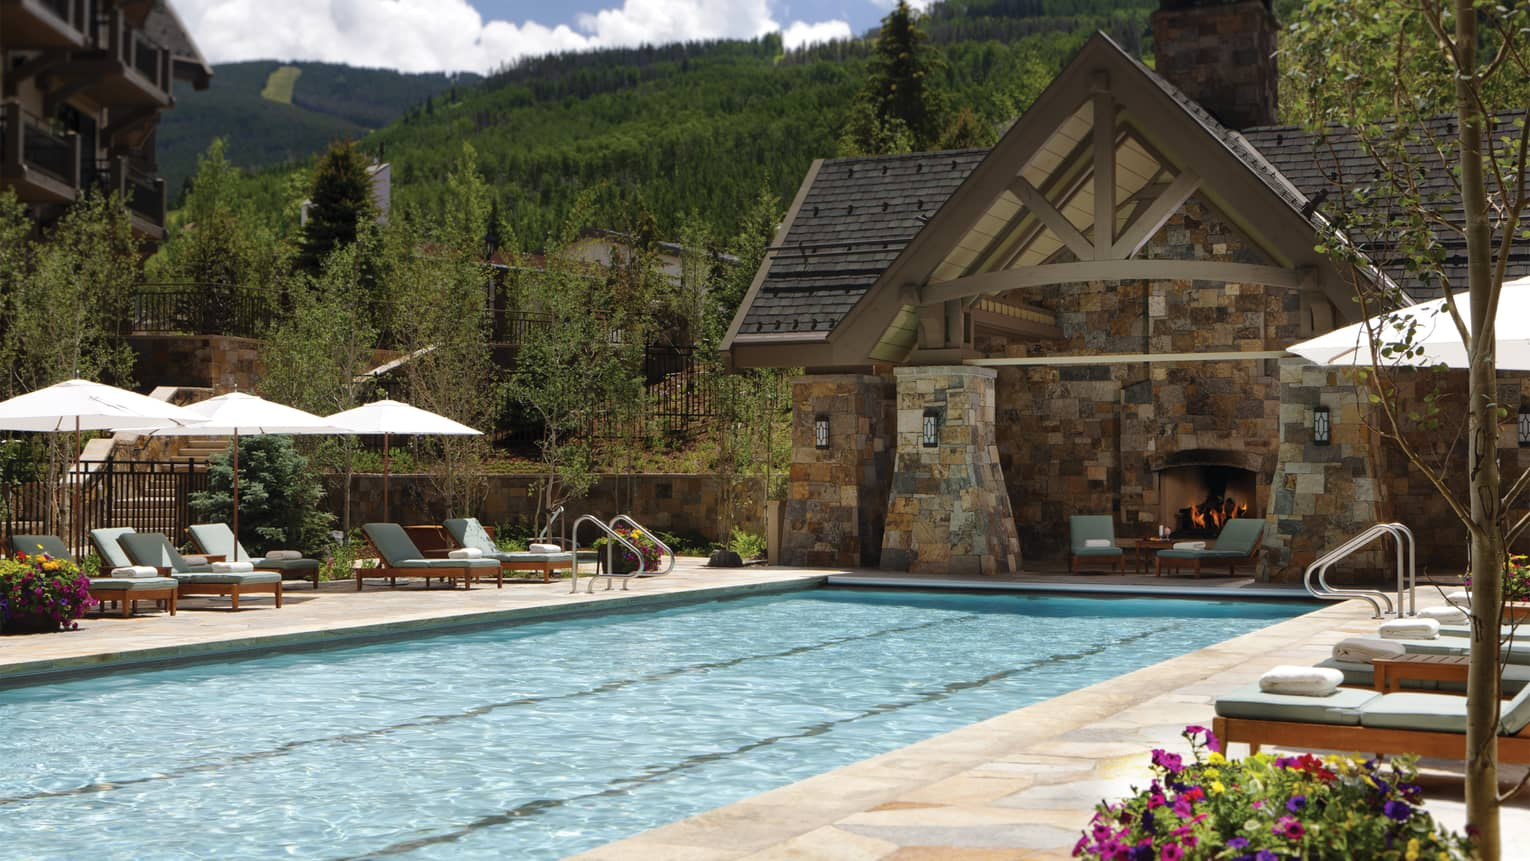 Year-round outdoor pool with brick patio and chalet-style cabana with fireplace and lounge chairs